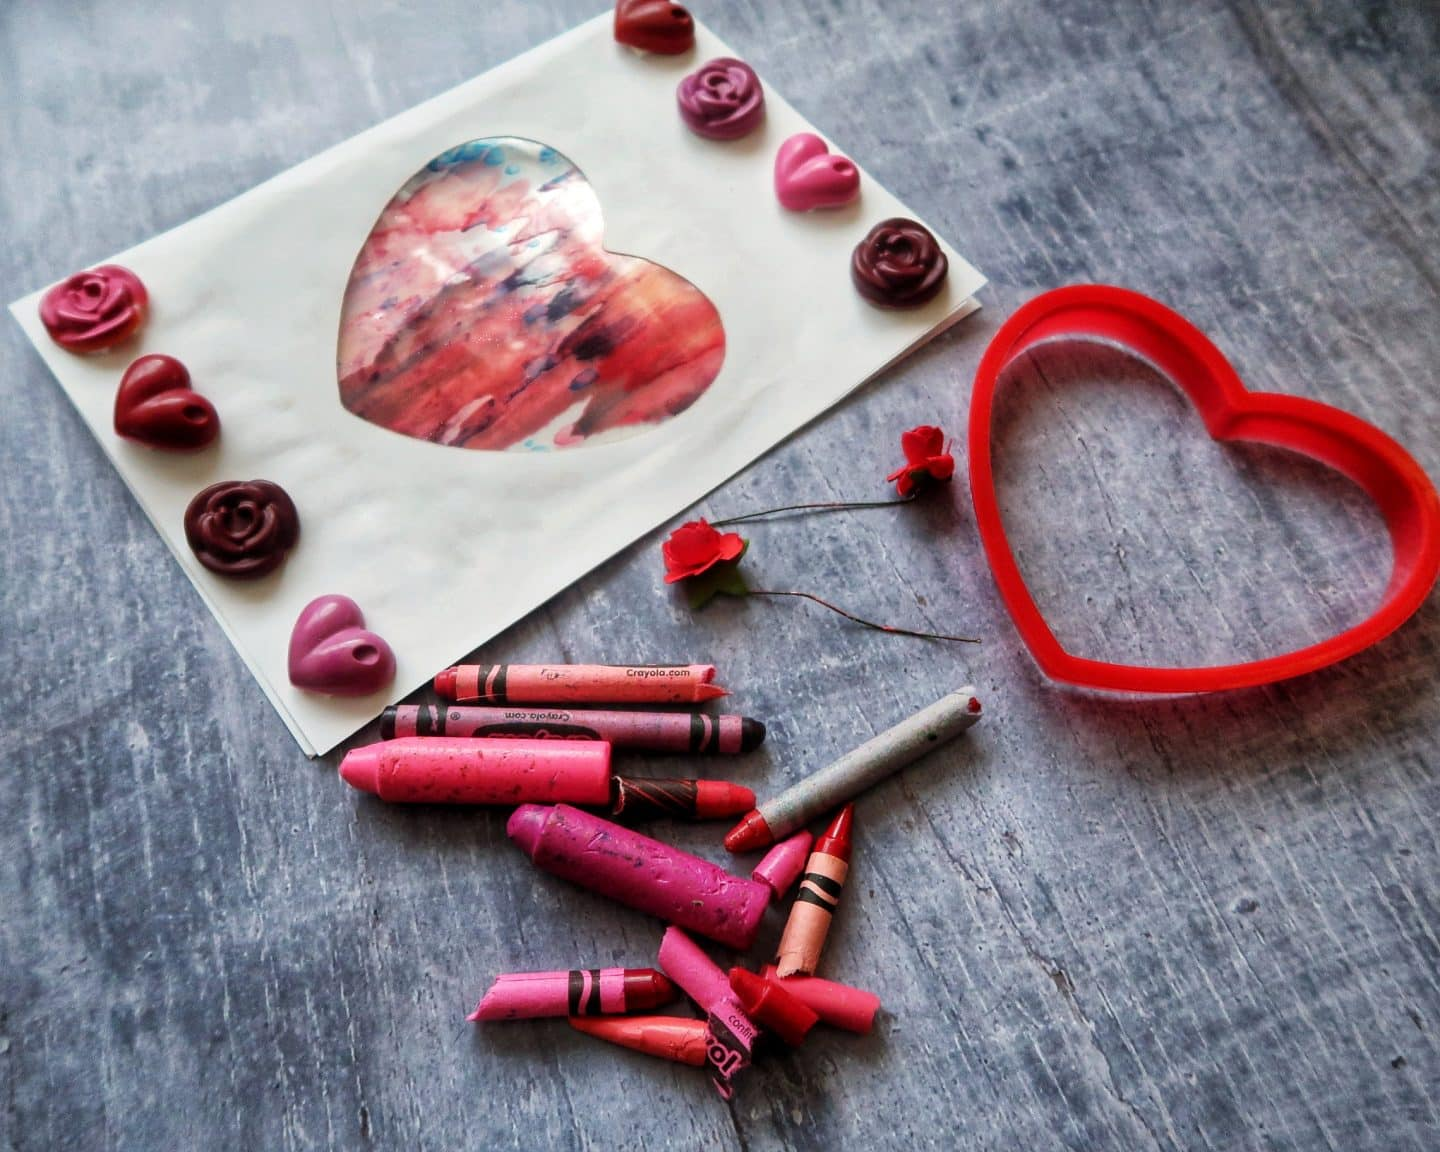 Recycled Wax Crayon Valentine's Day Card Craft